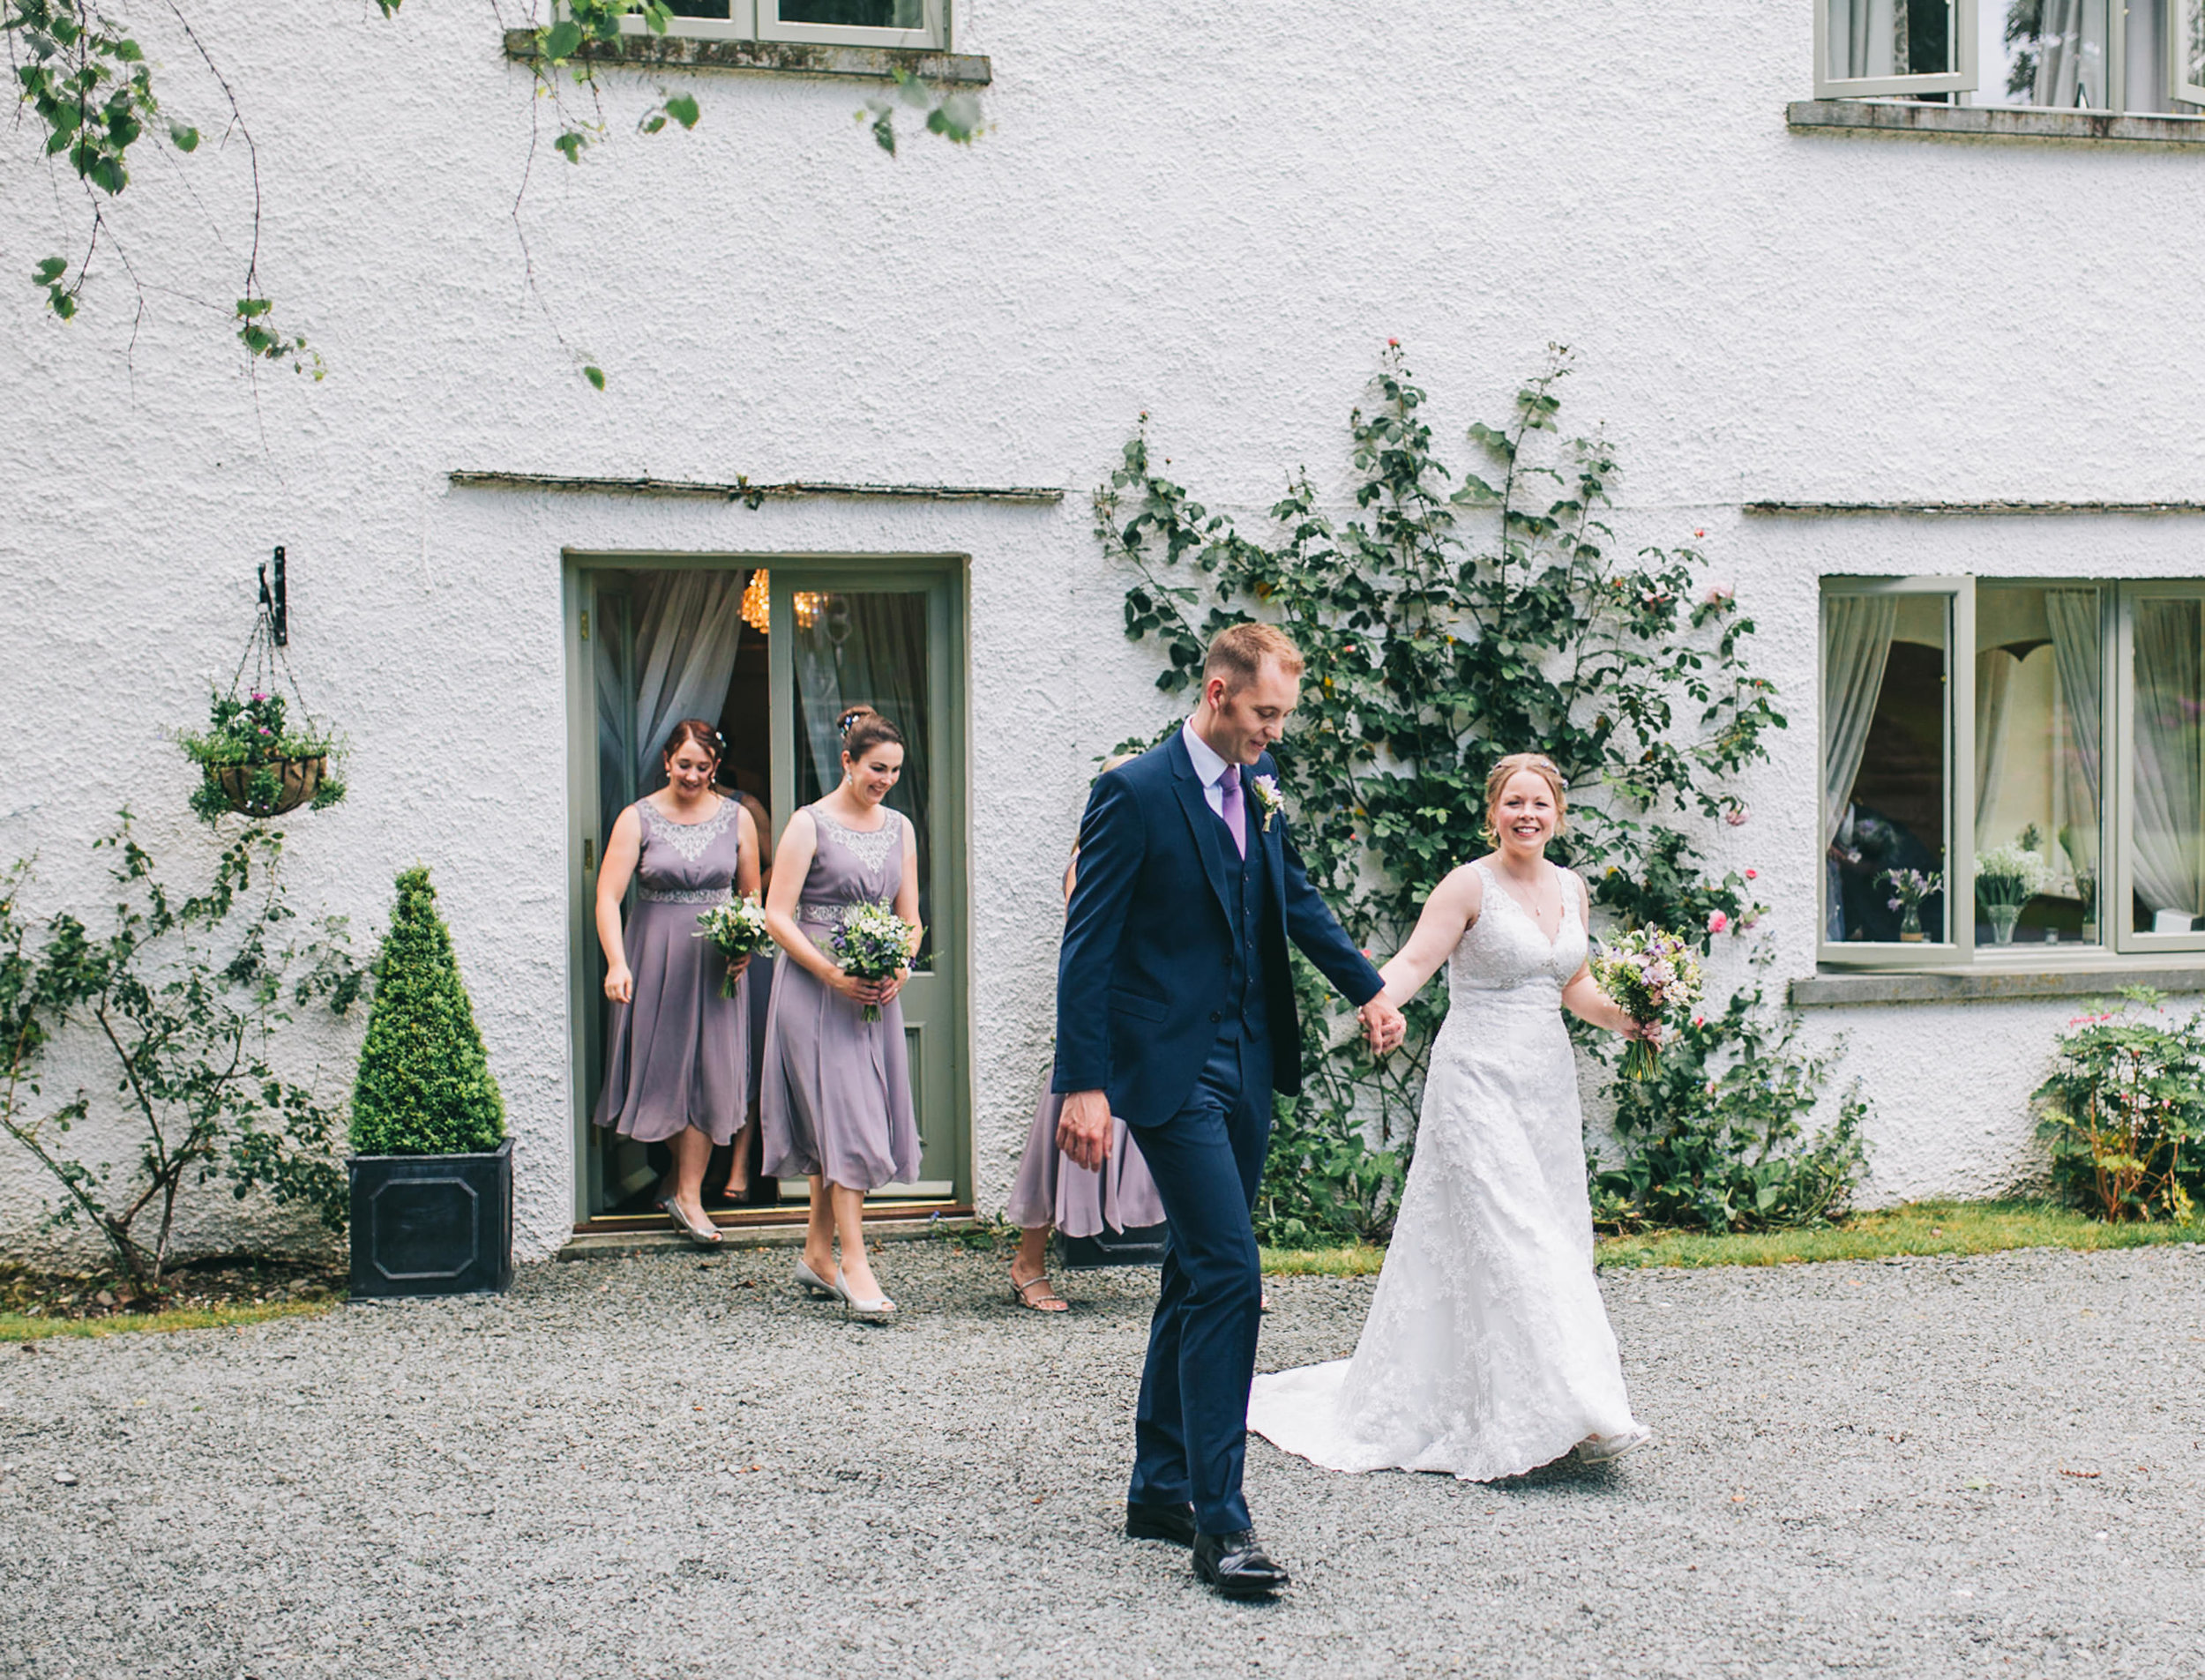 leaving the wedding ceremony at Cote How Rydal